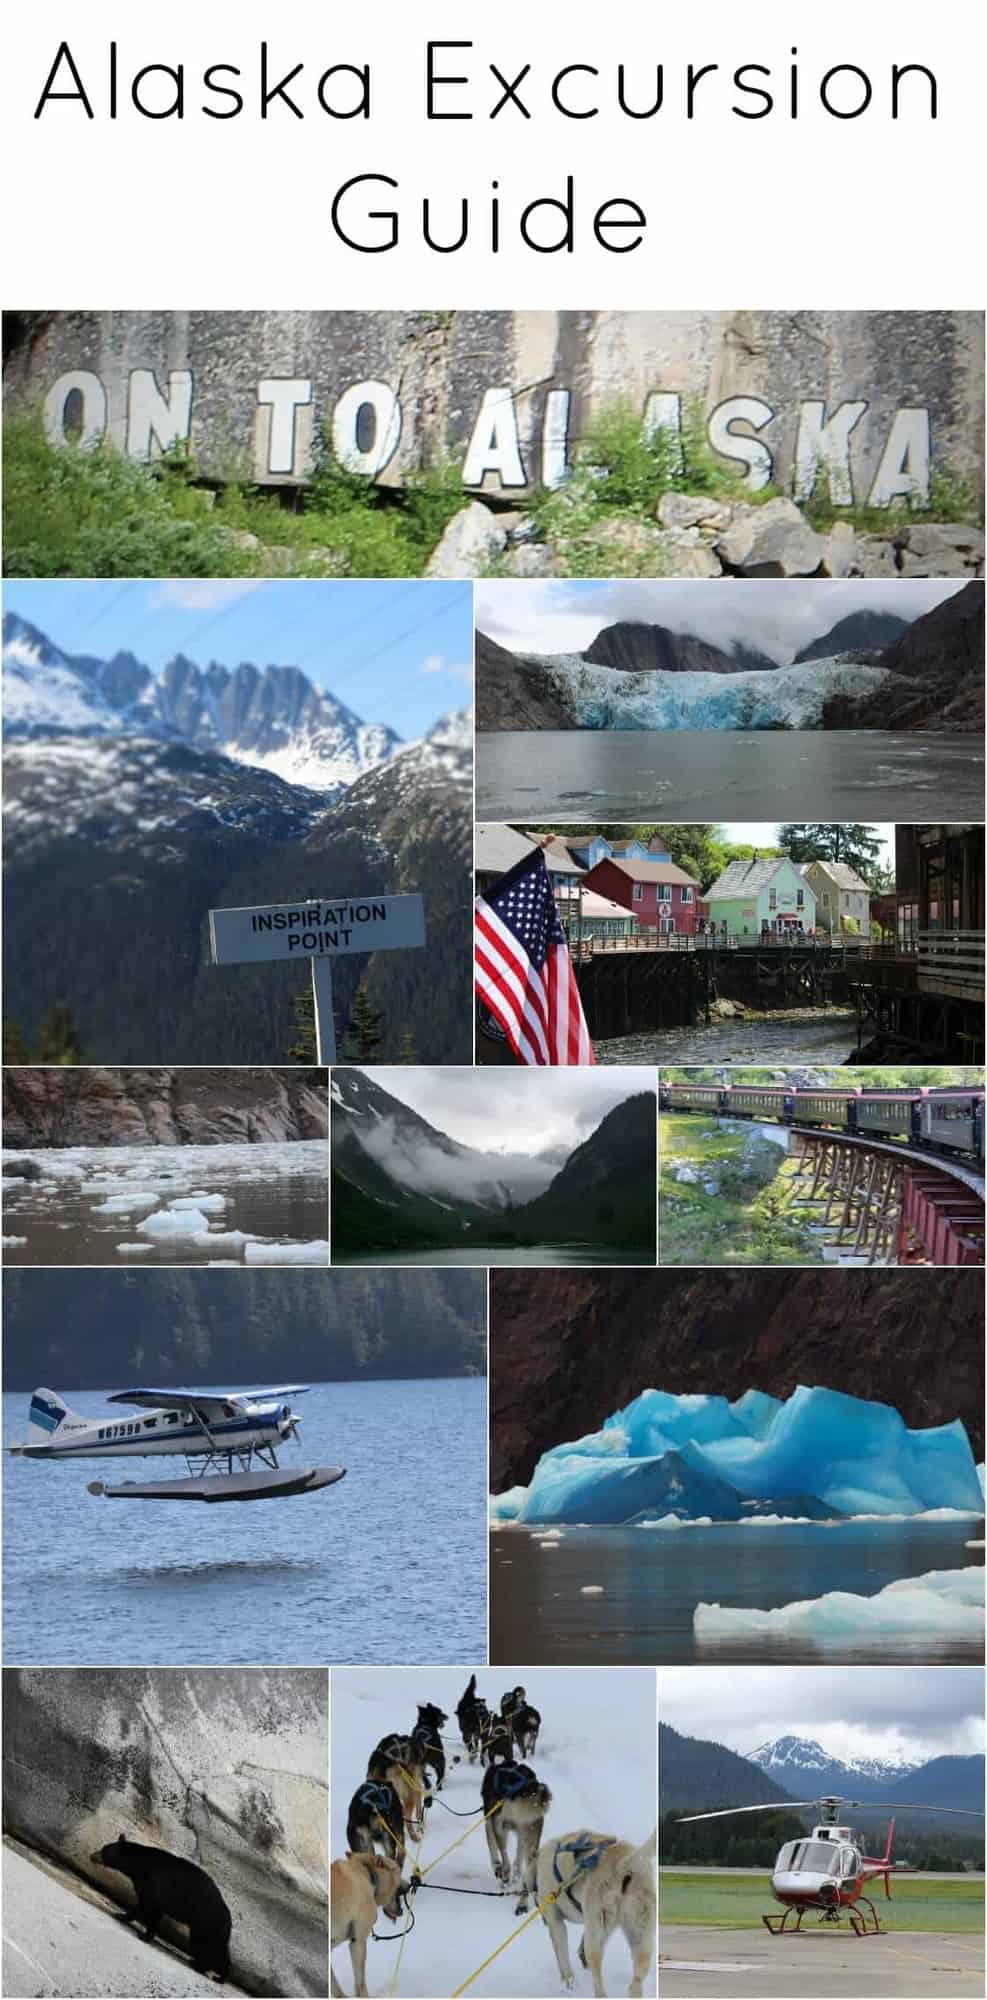 Alaska Excursion Guide